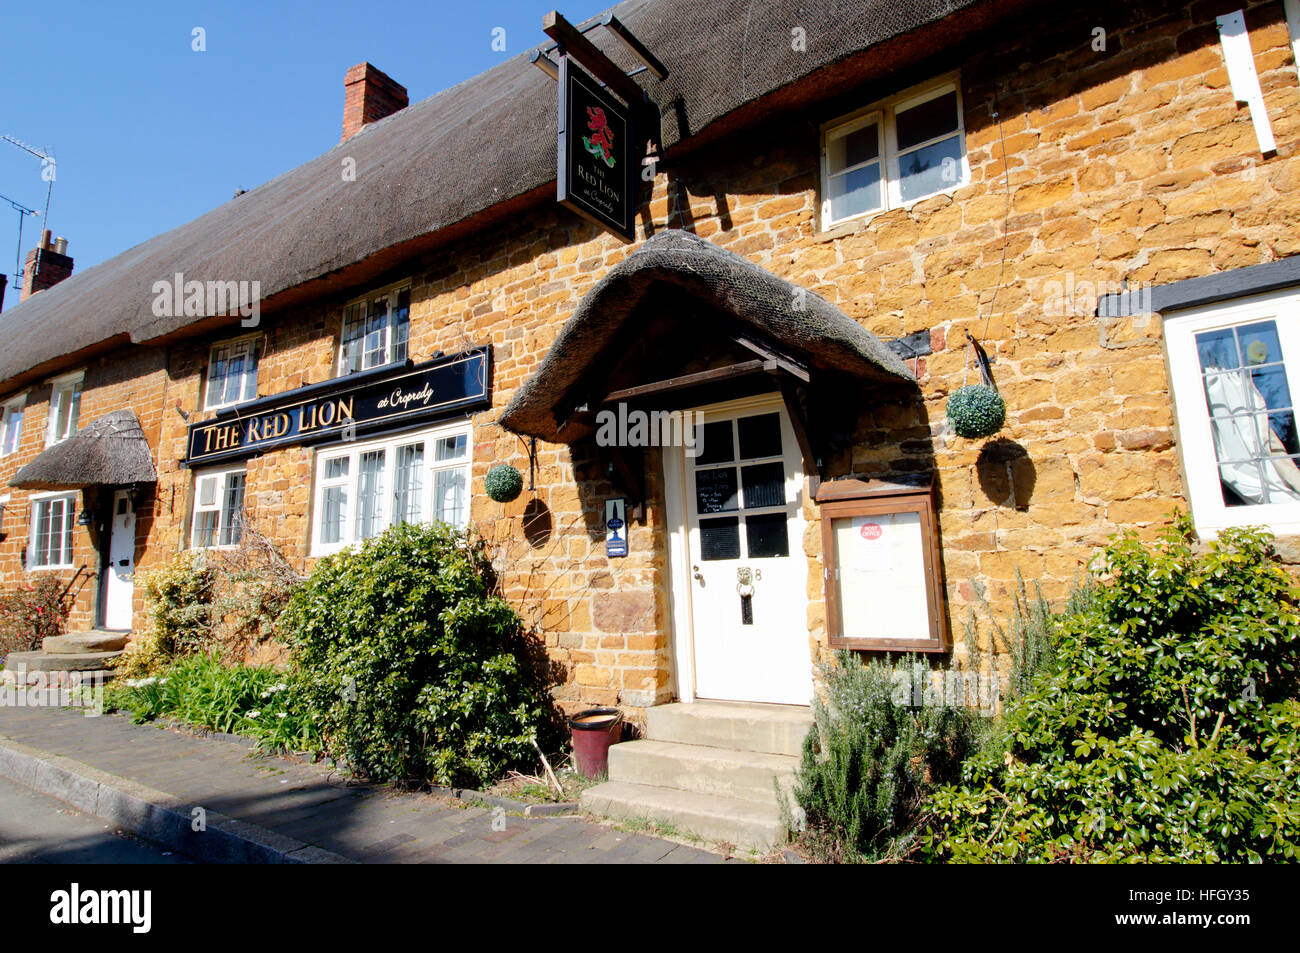 The Red Lion public house in the village of Cropredy in Oxfordshire - Stock Image